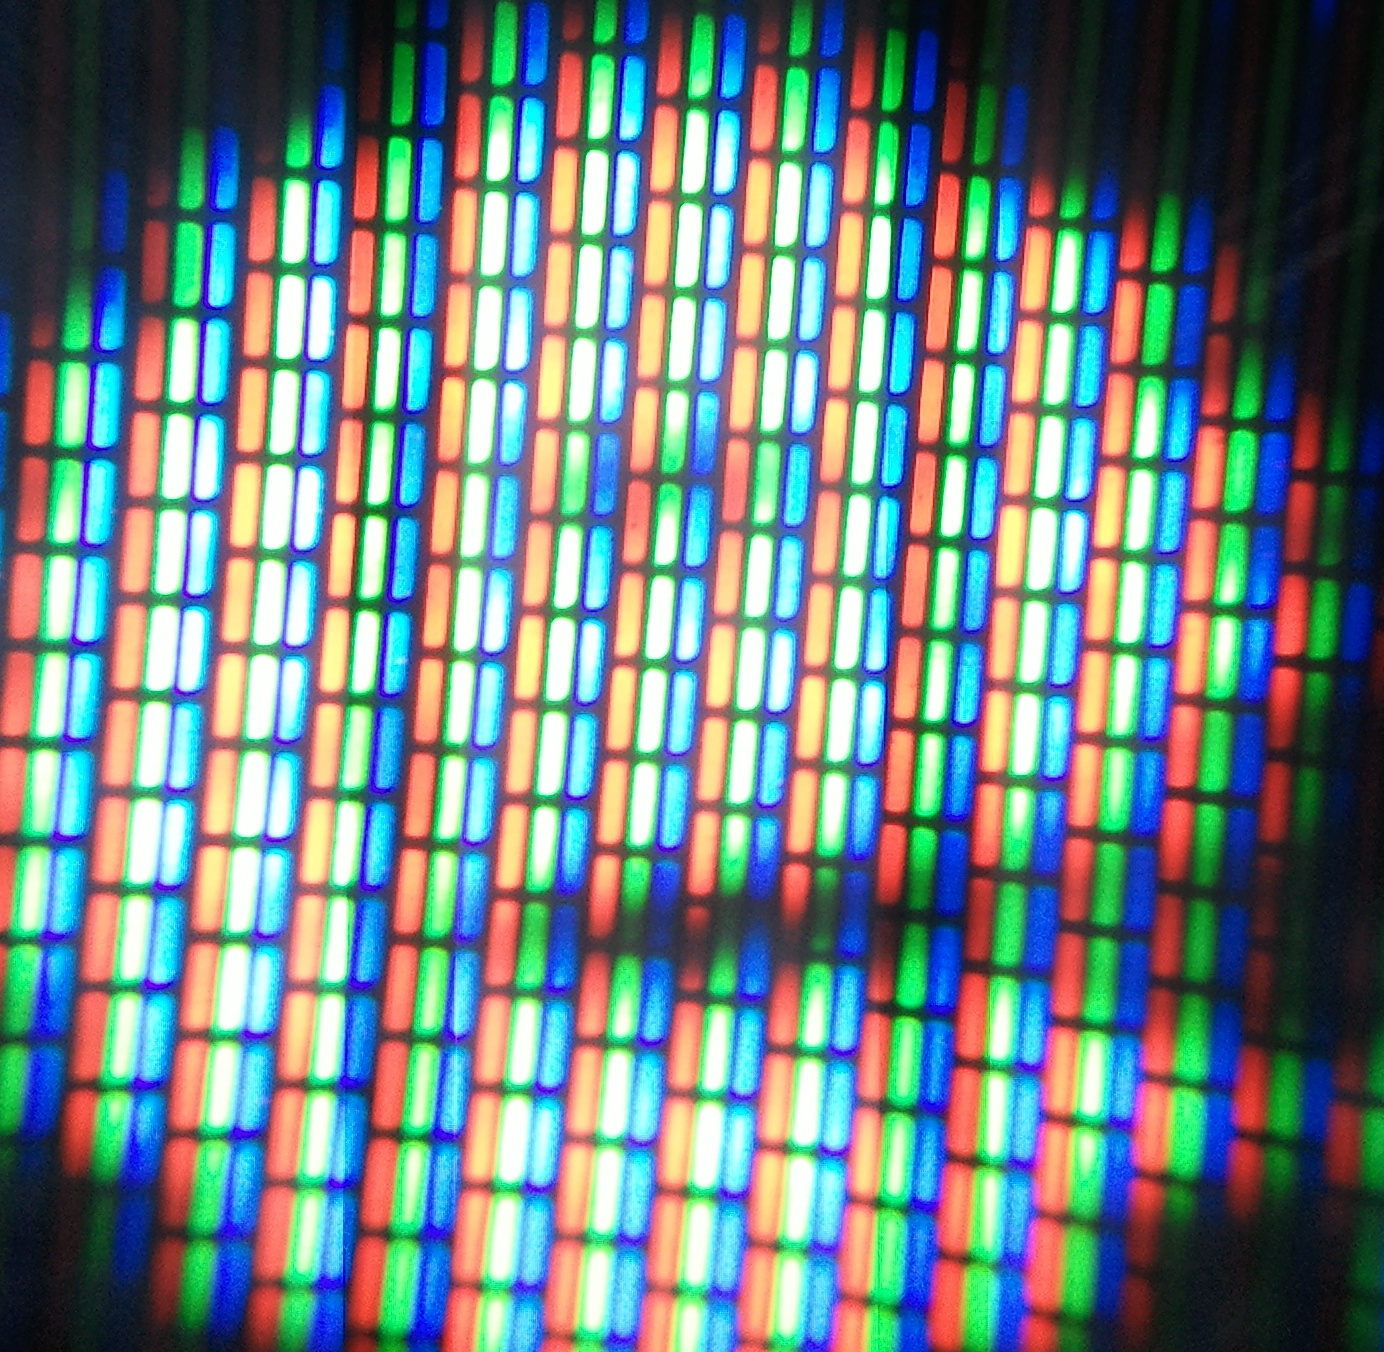 Filthy Pants: A Computer Blog: Designing a Large-scale Phosphor